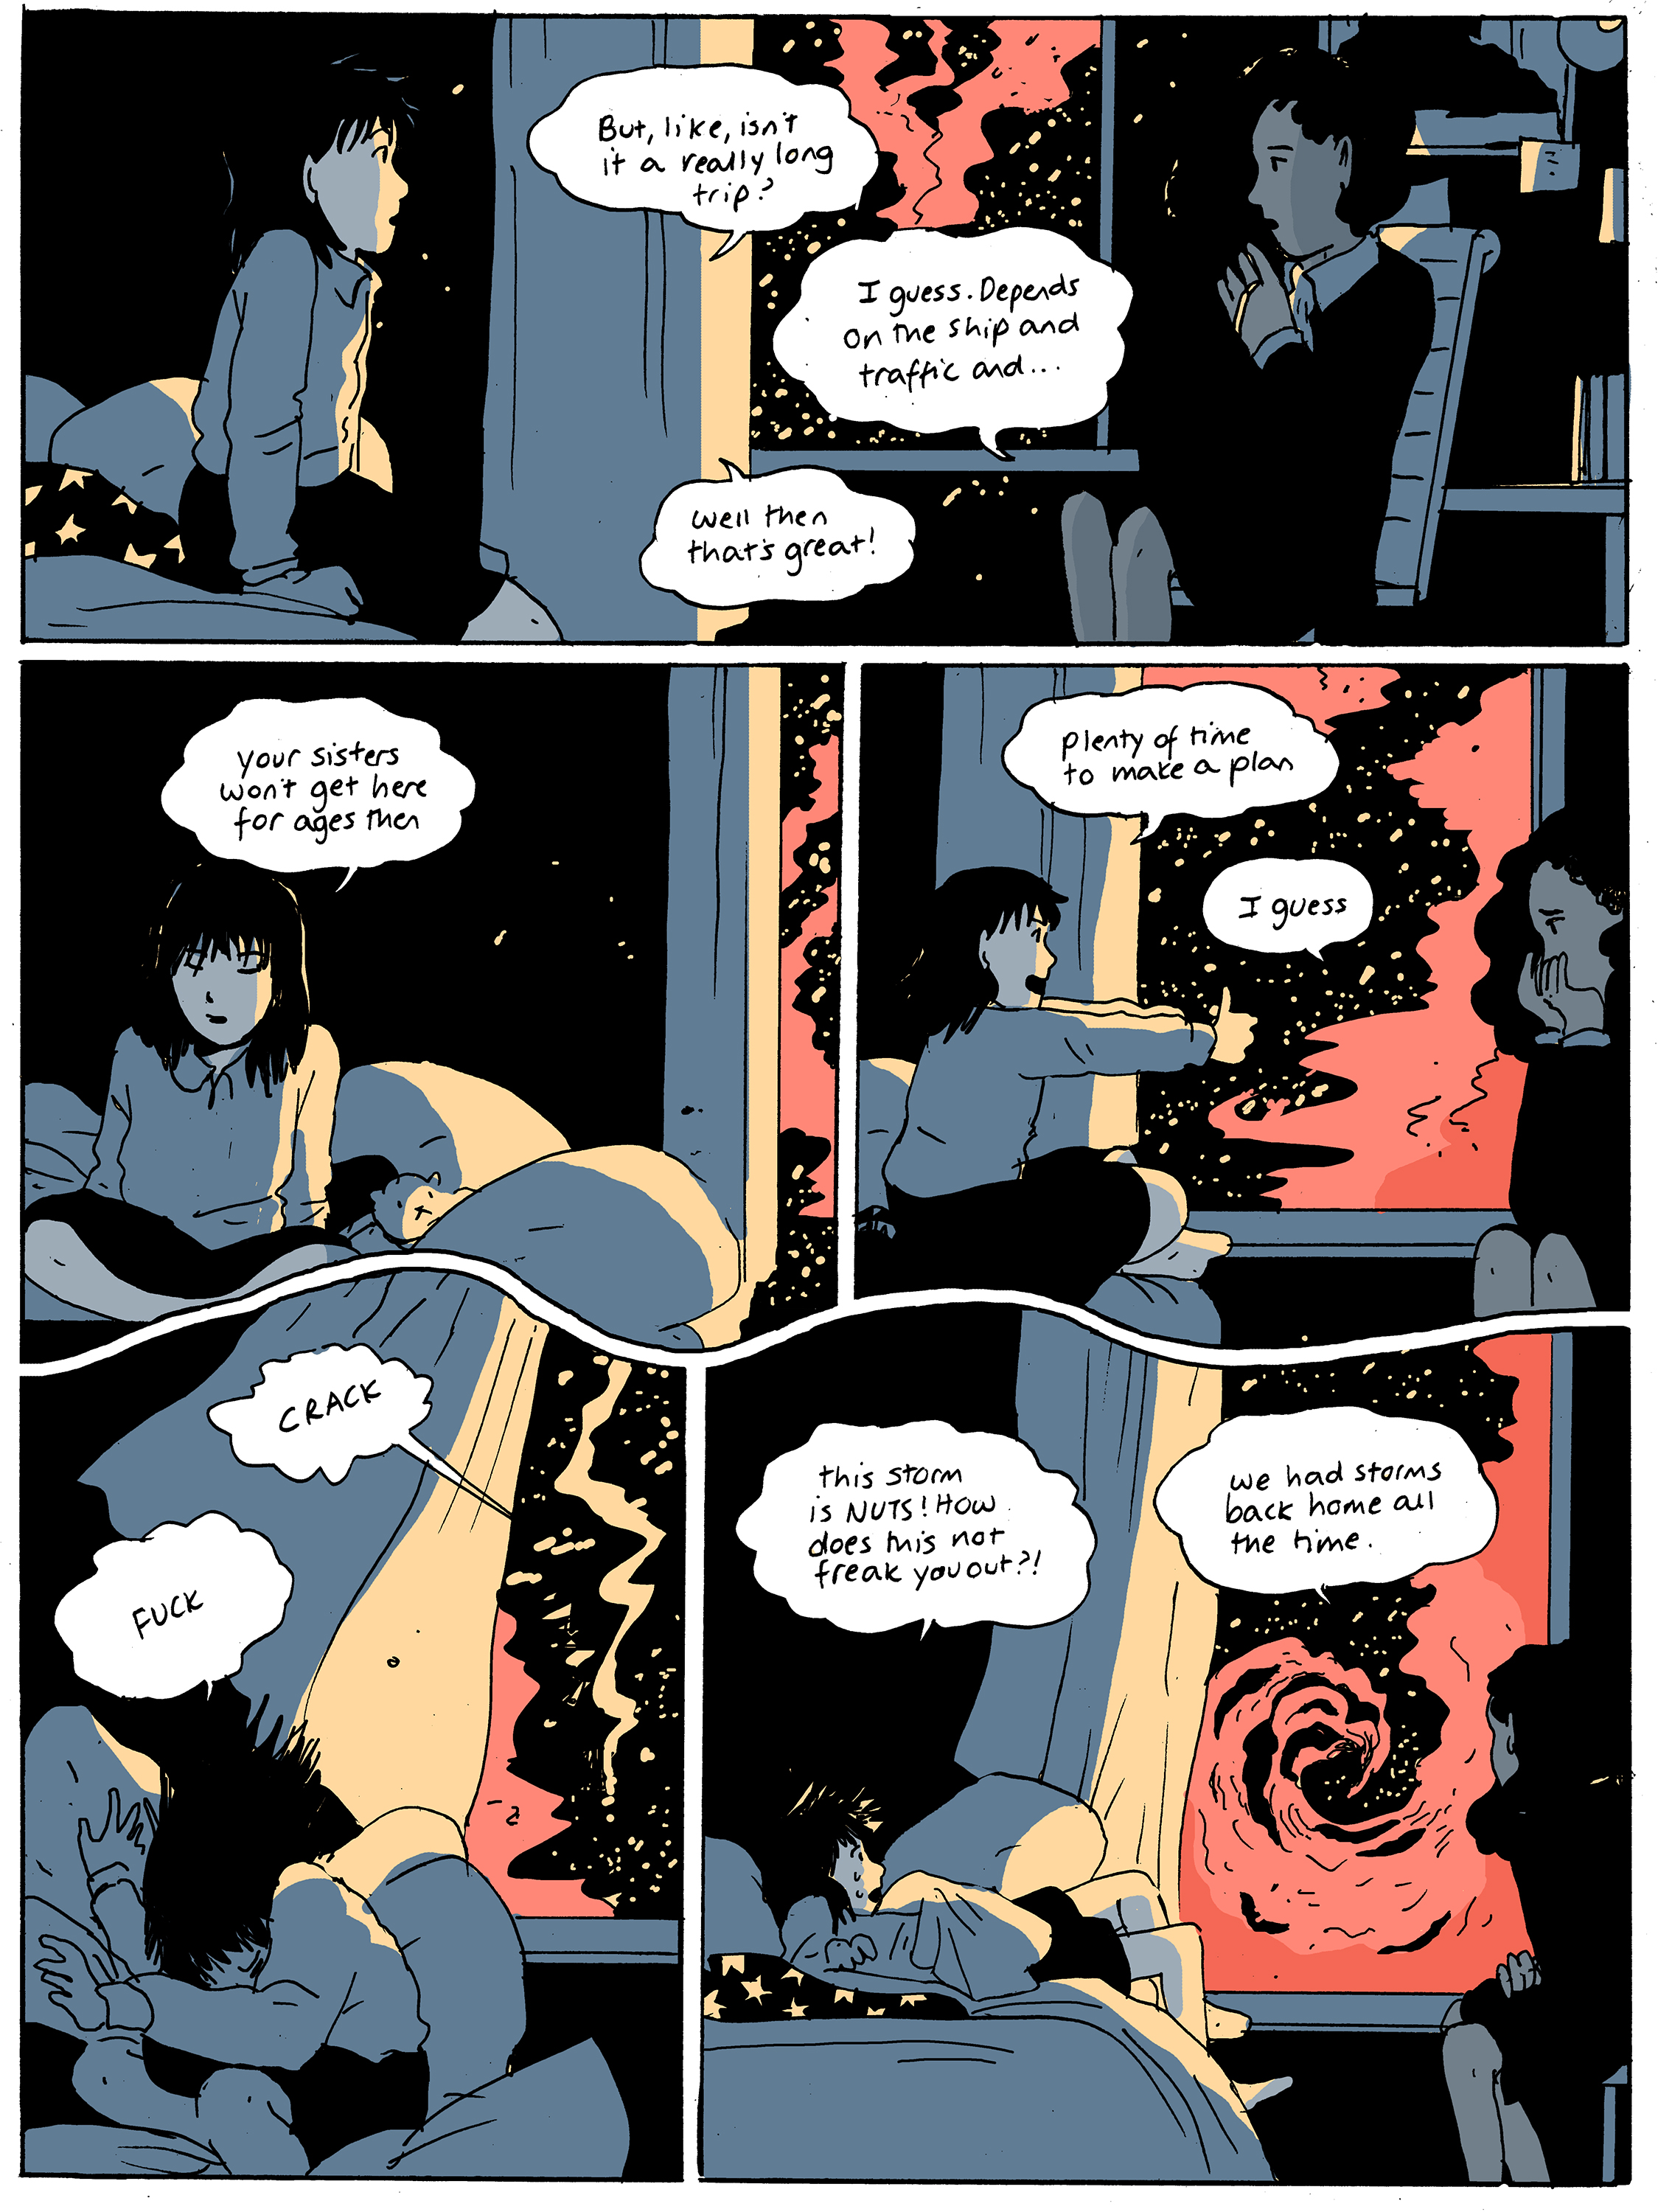 chapter11_page25.jpg